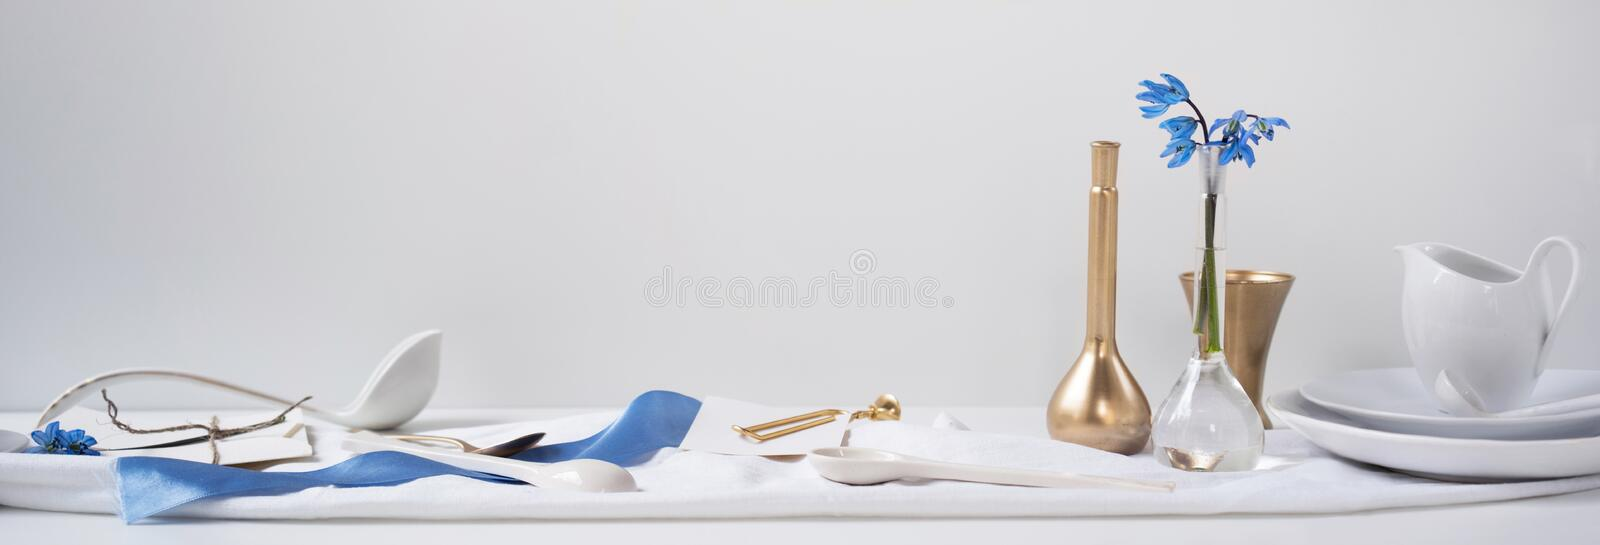 Header, banner for site design. Set of dishes for serving. Horizontal format, space for text royalty free stock photography